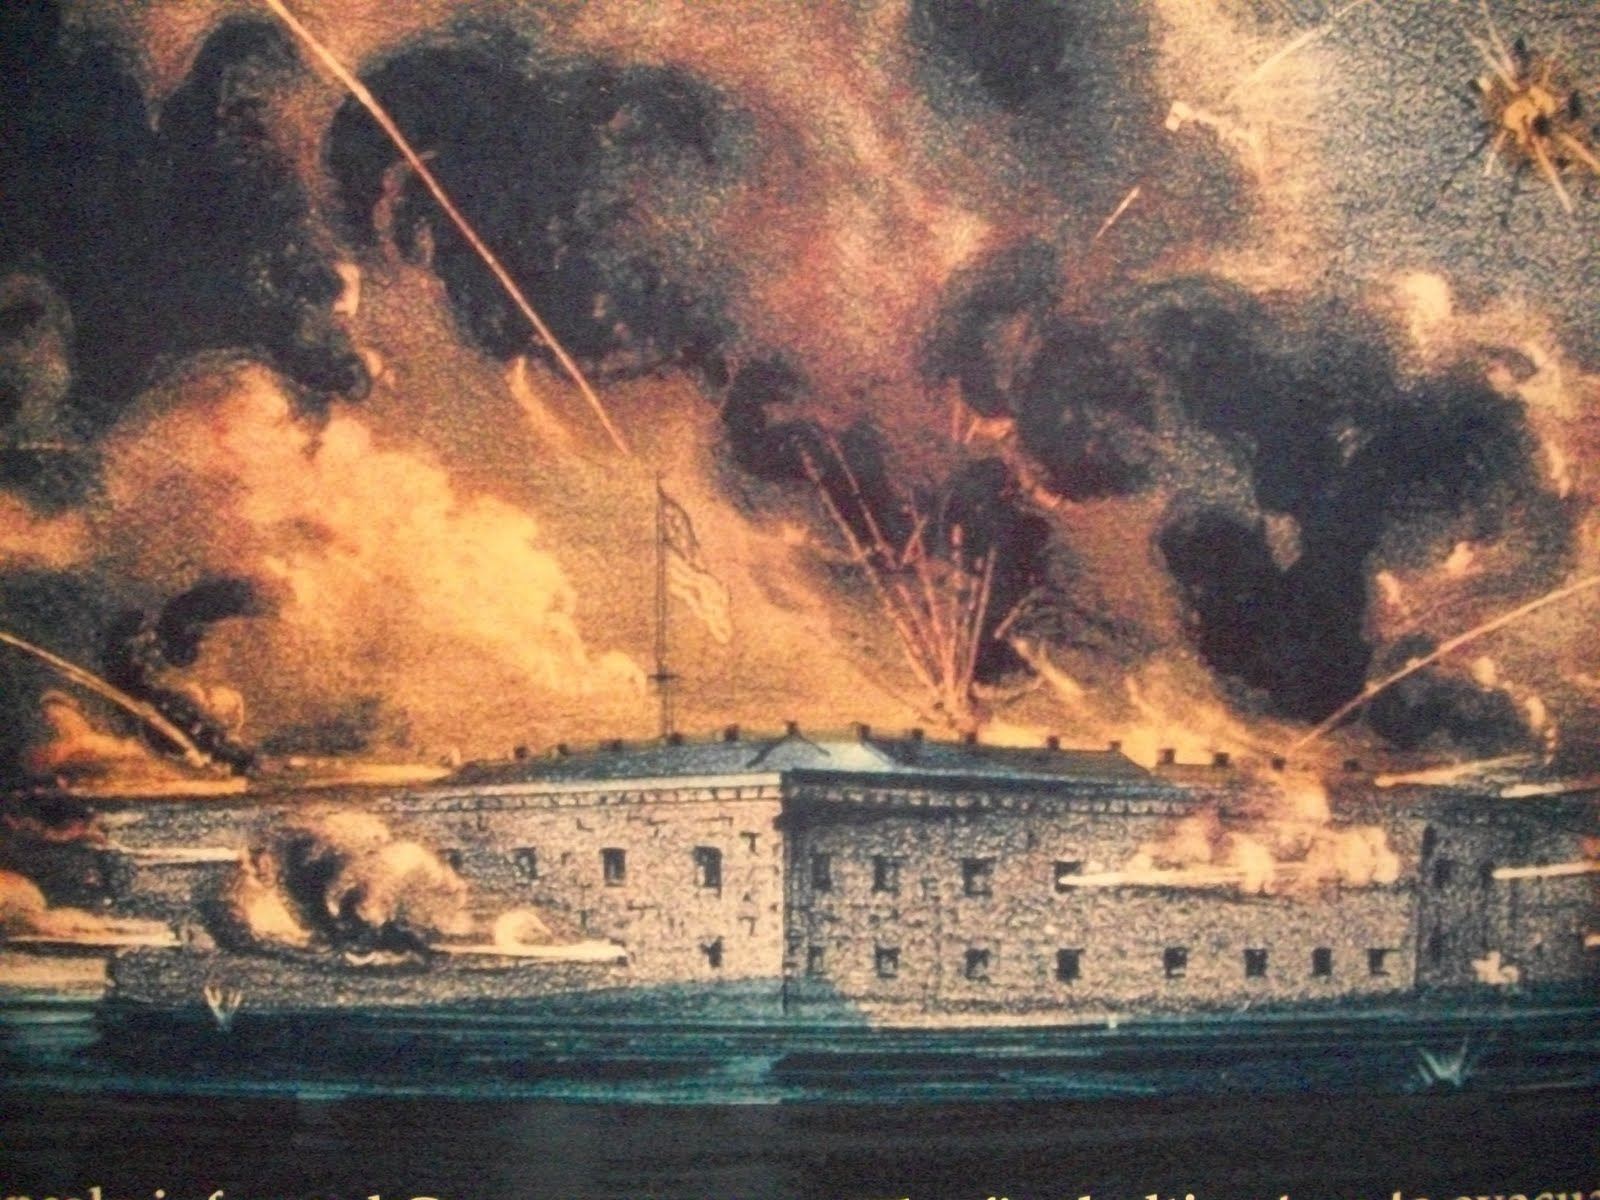 a history of the fort sumter battle during the civil war A special military decoration, known as the gillmore medal, was later issued to all union service members who had performed duty in fort sumter during the opening battle of the american civil war the fort sumter flag became a popular patriotic symbol after maj anderson returned north with it.